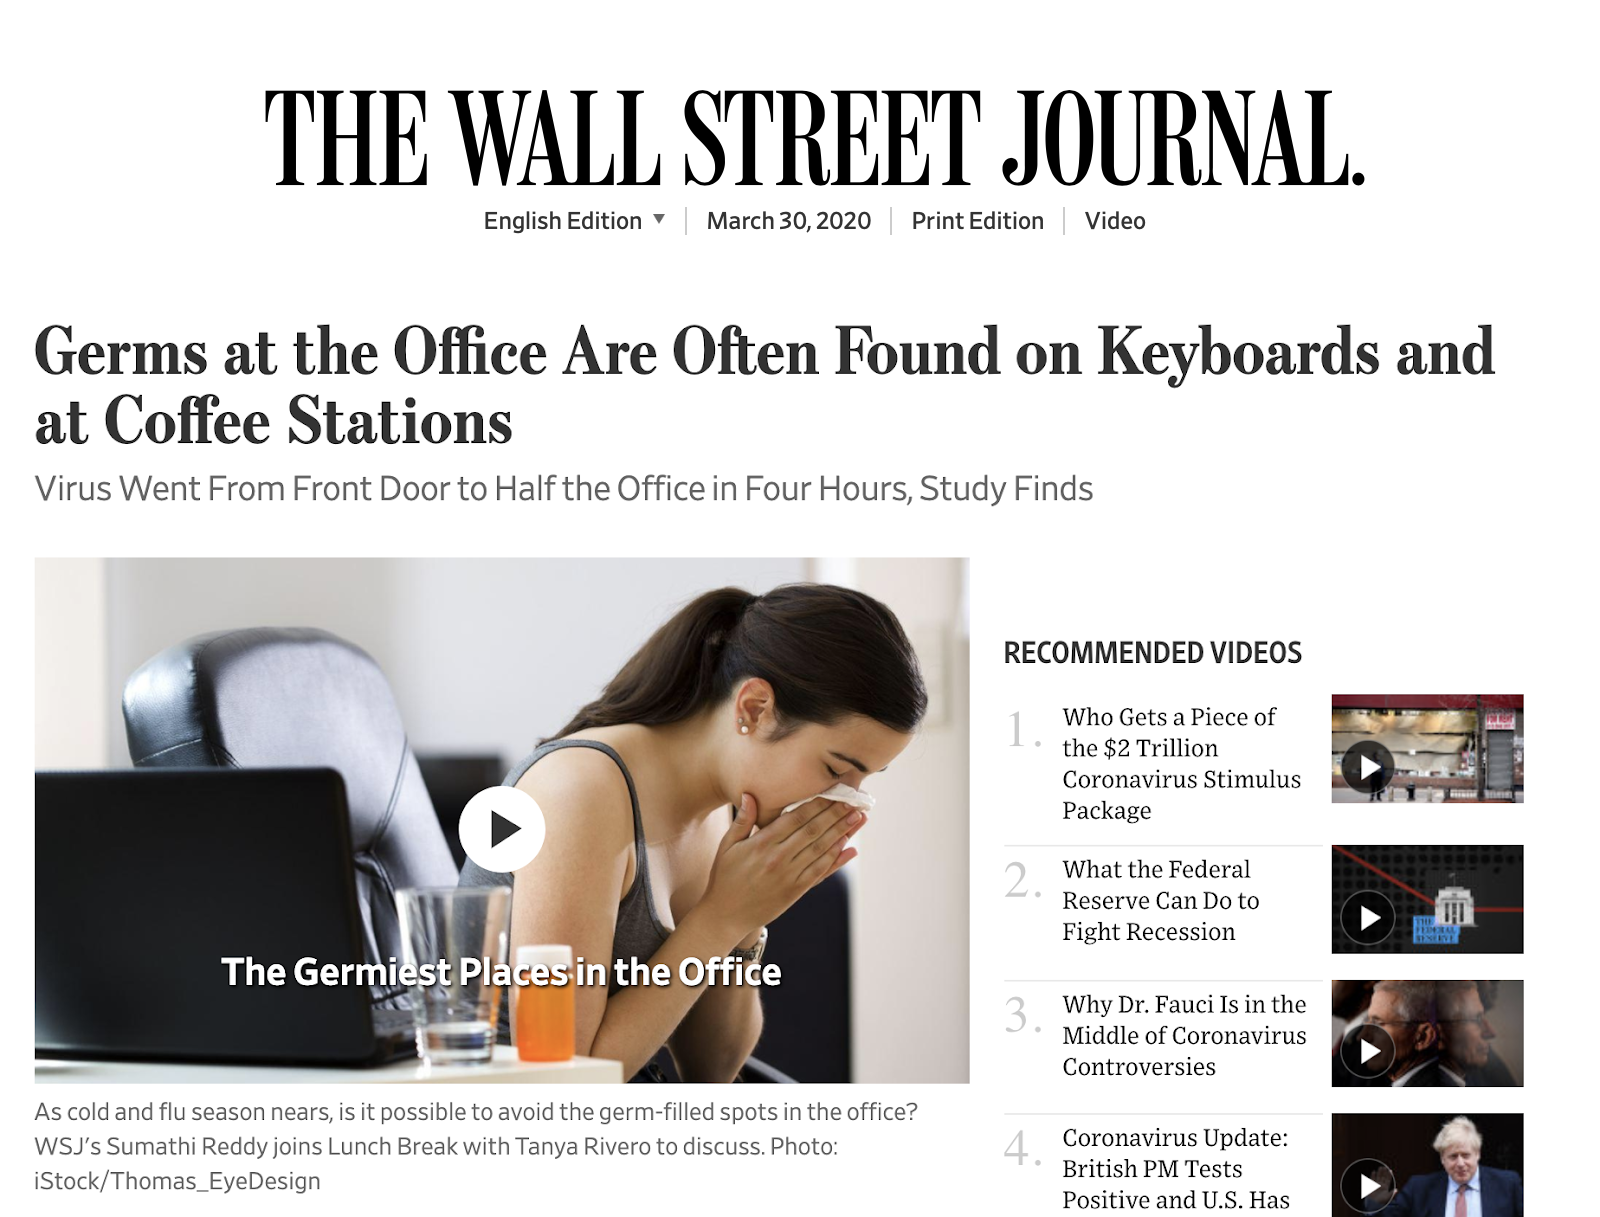 The WSJ Cover